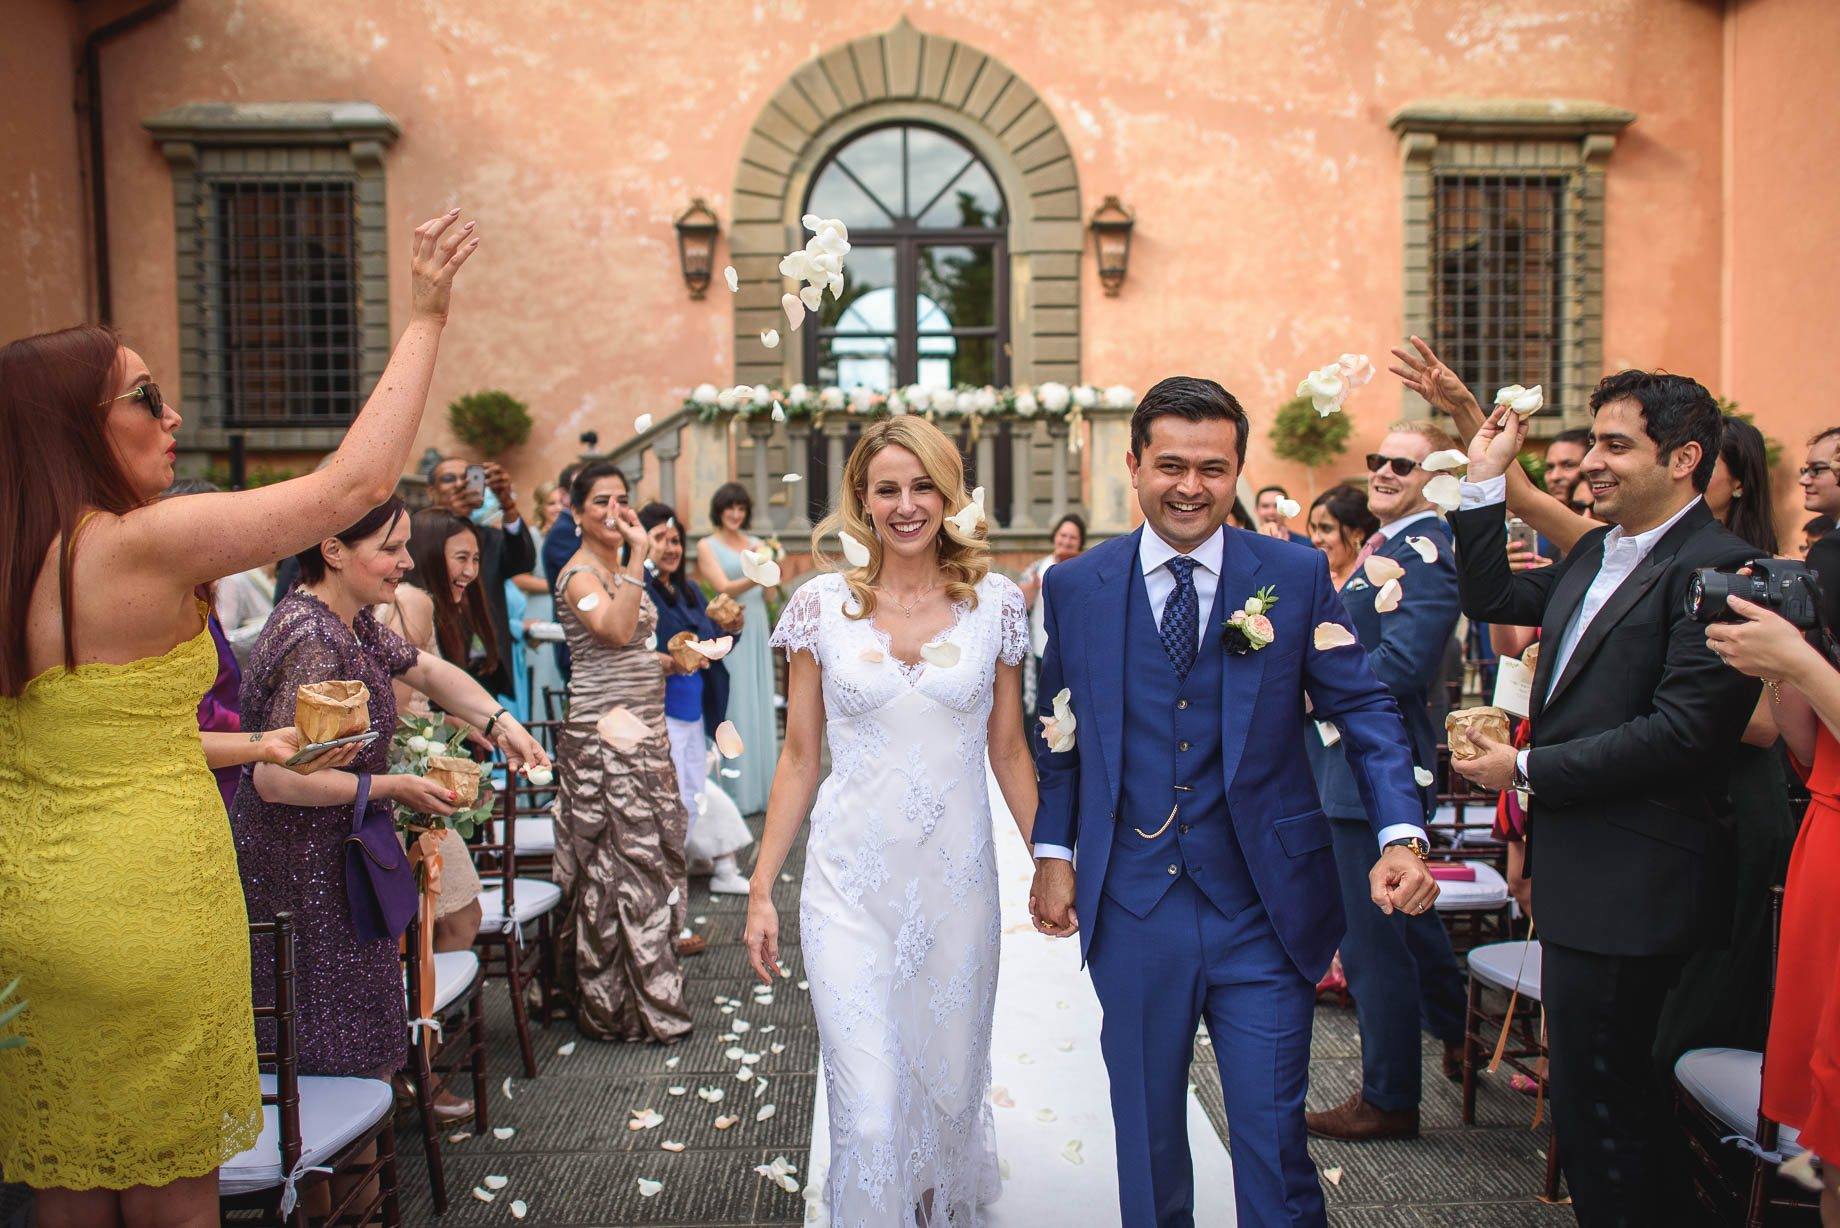 Tuscany wedding photography - Roisin and Moubin - Guy Collier Photography (114 of 251)